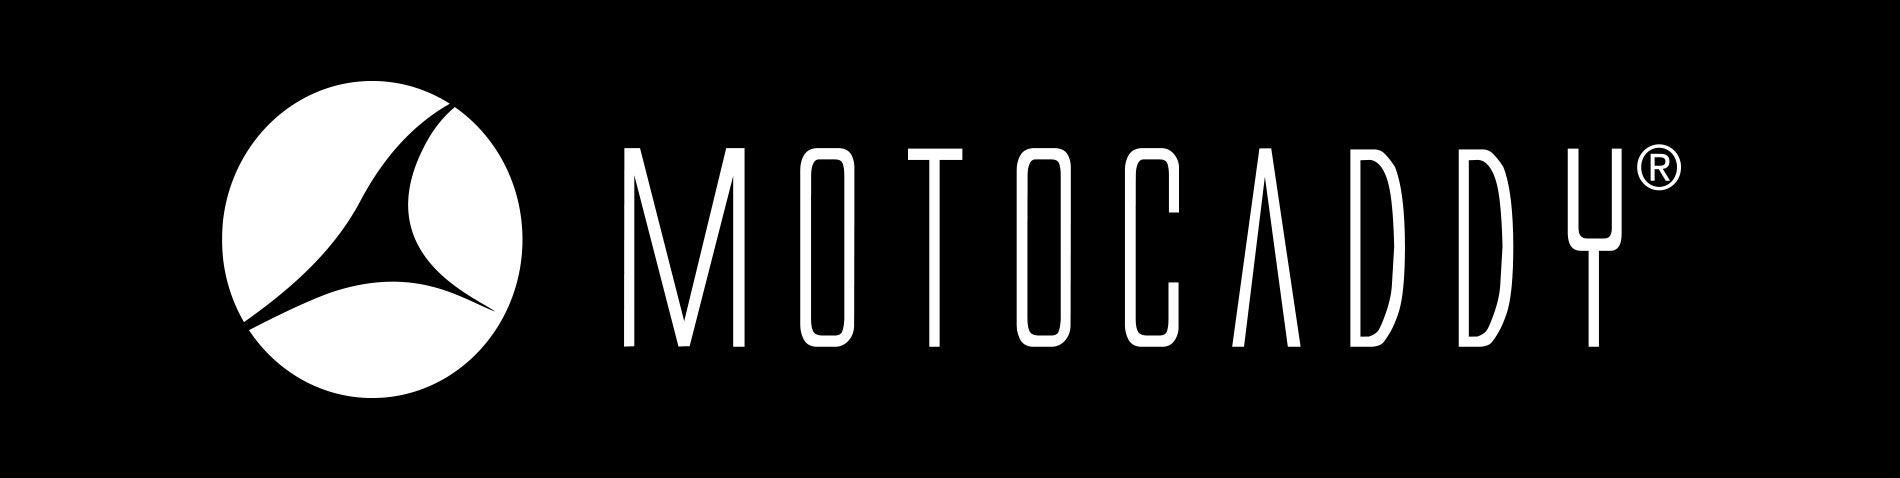 Motocaddy Header